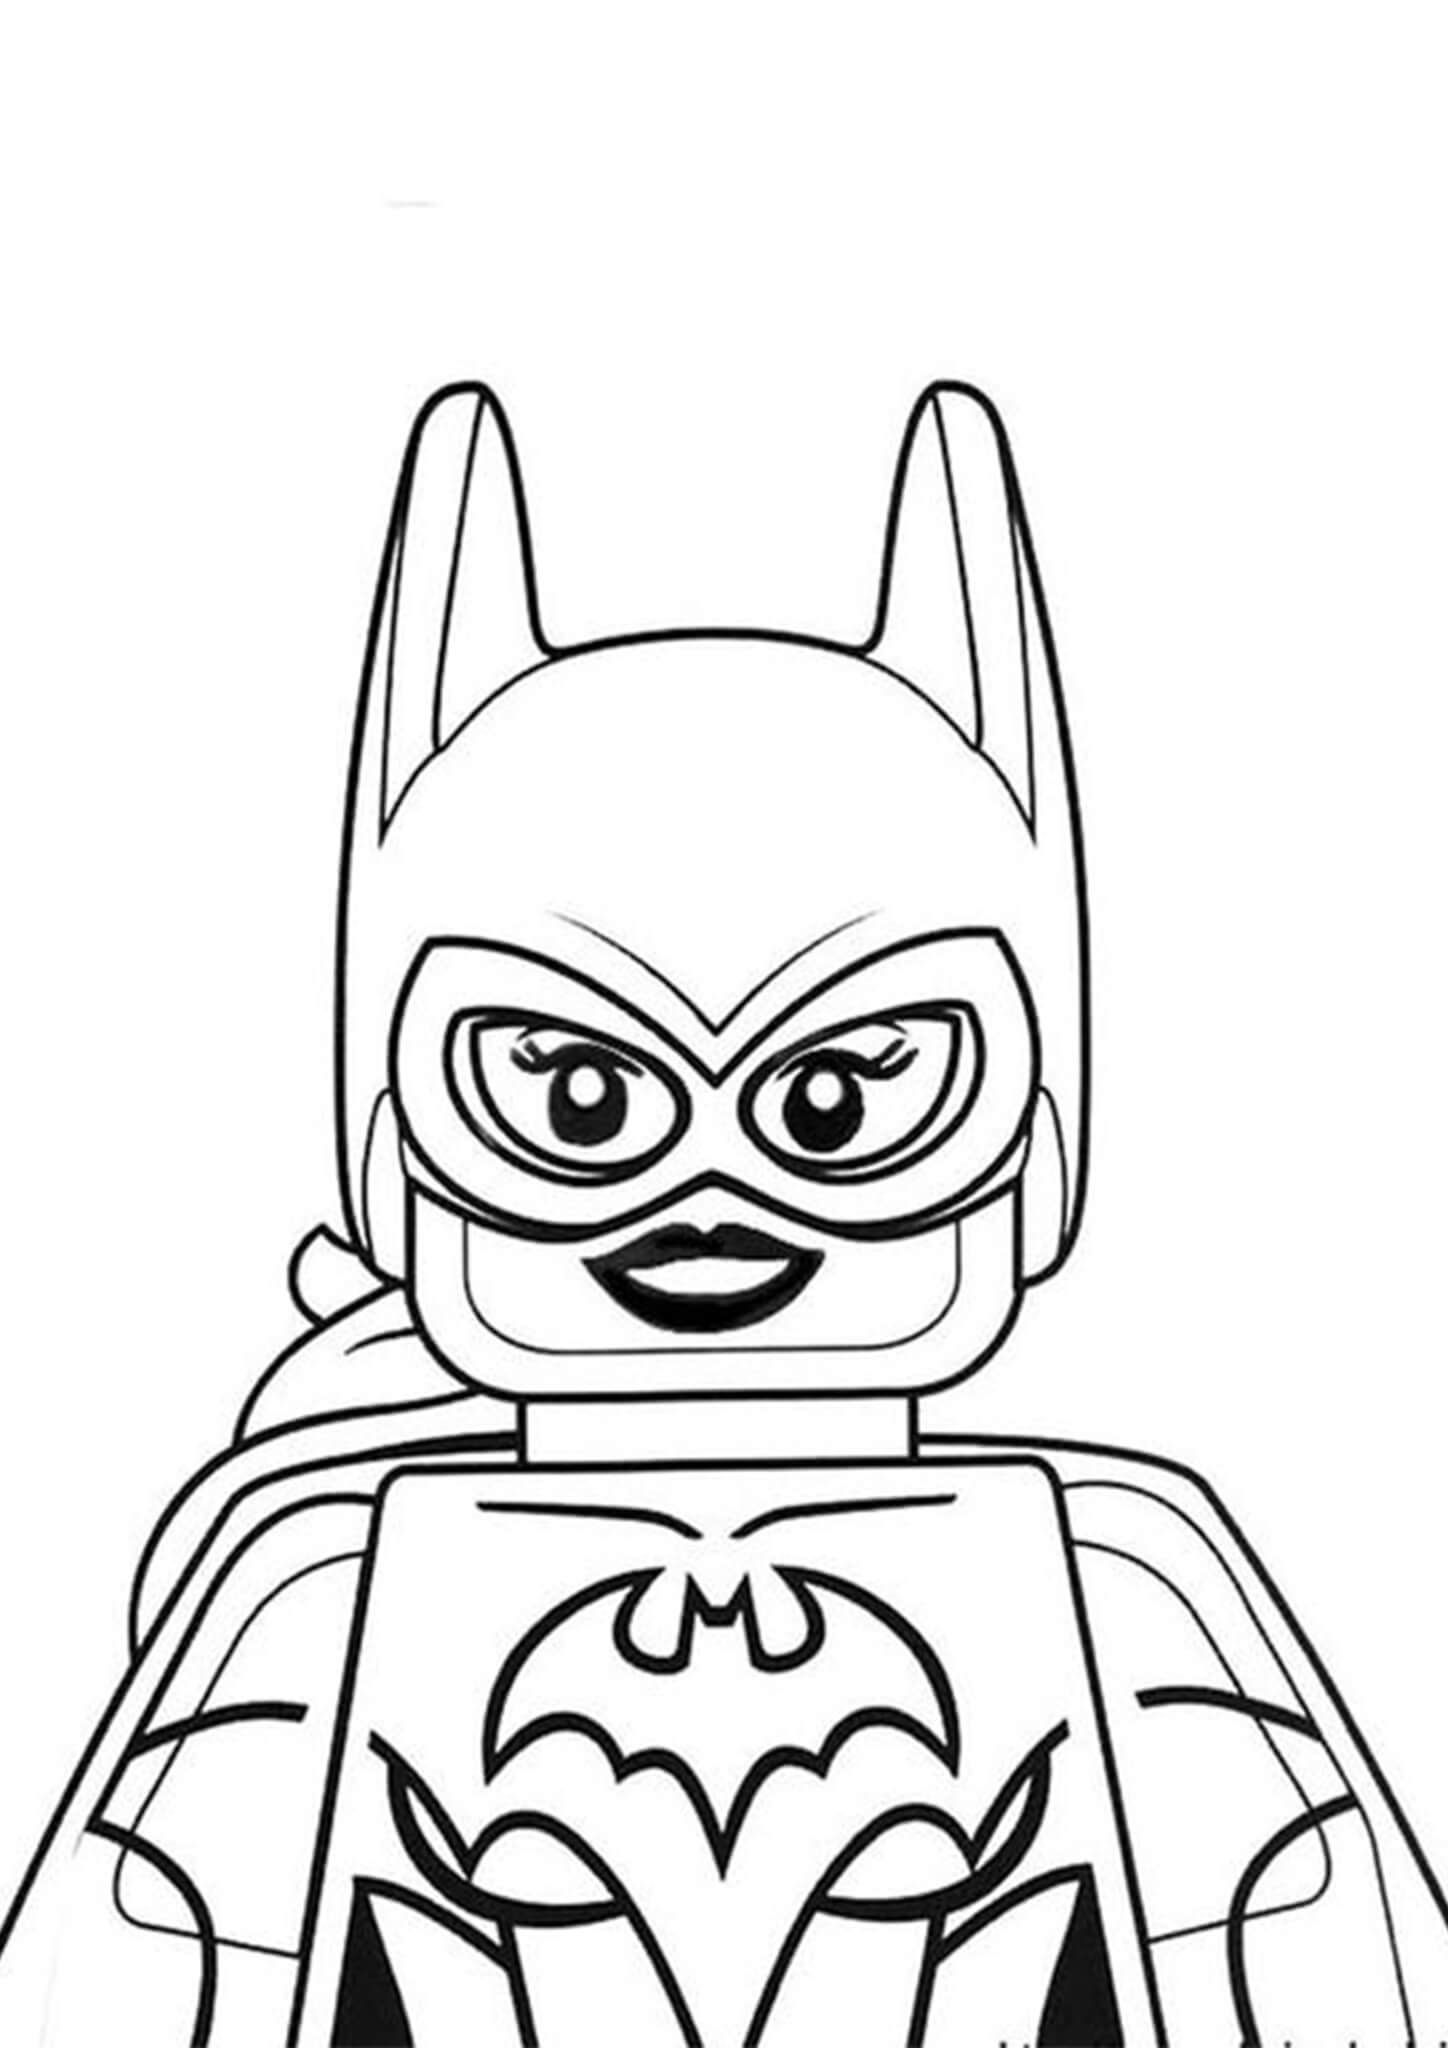 Free Easy To Print Lego Batman Coloring Pages In 2020 Batman Coloring Pages Lego Batman Batman